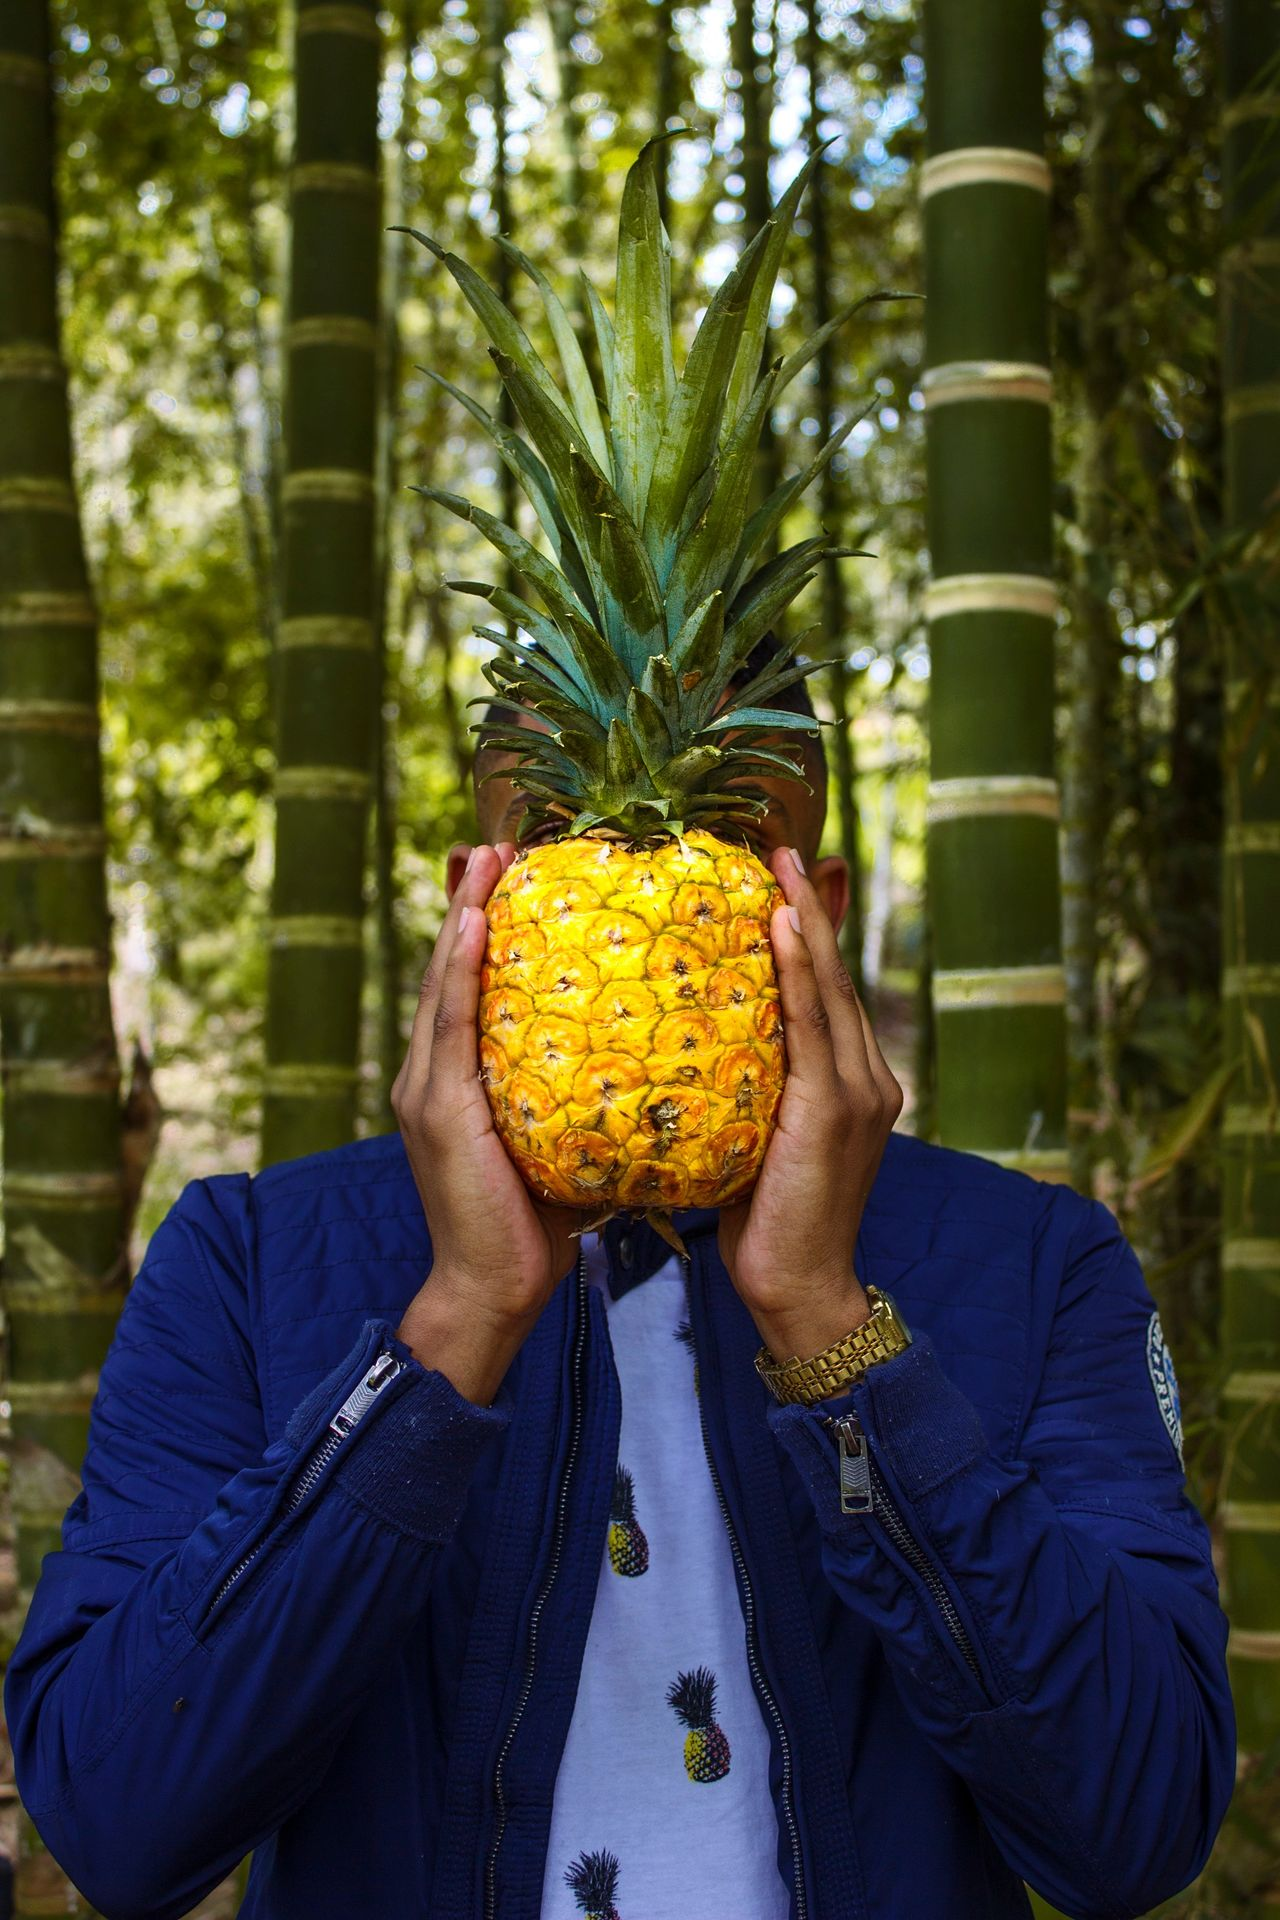 Close-up of man holding pineapple